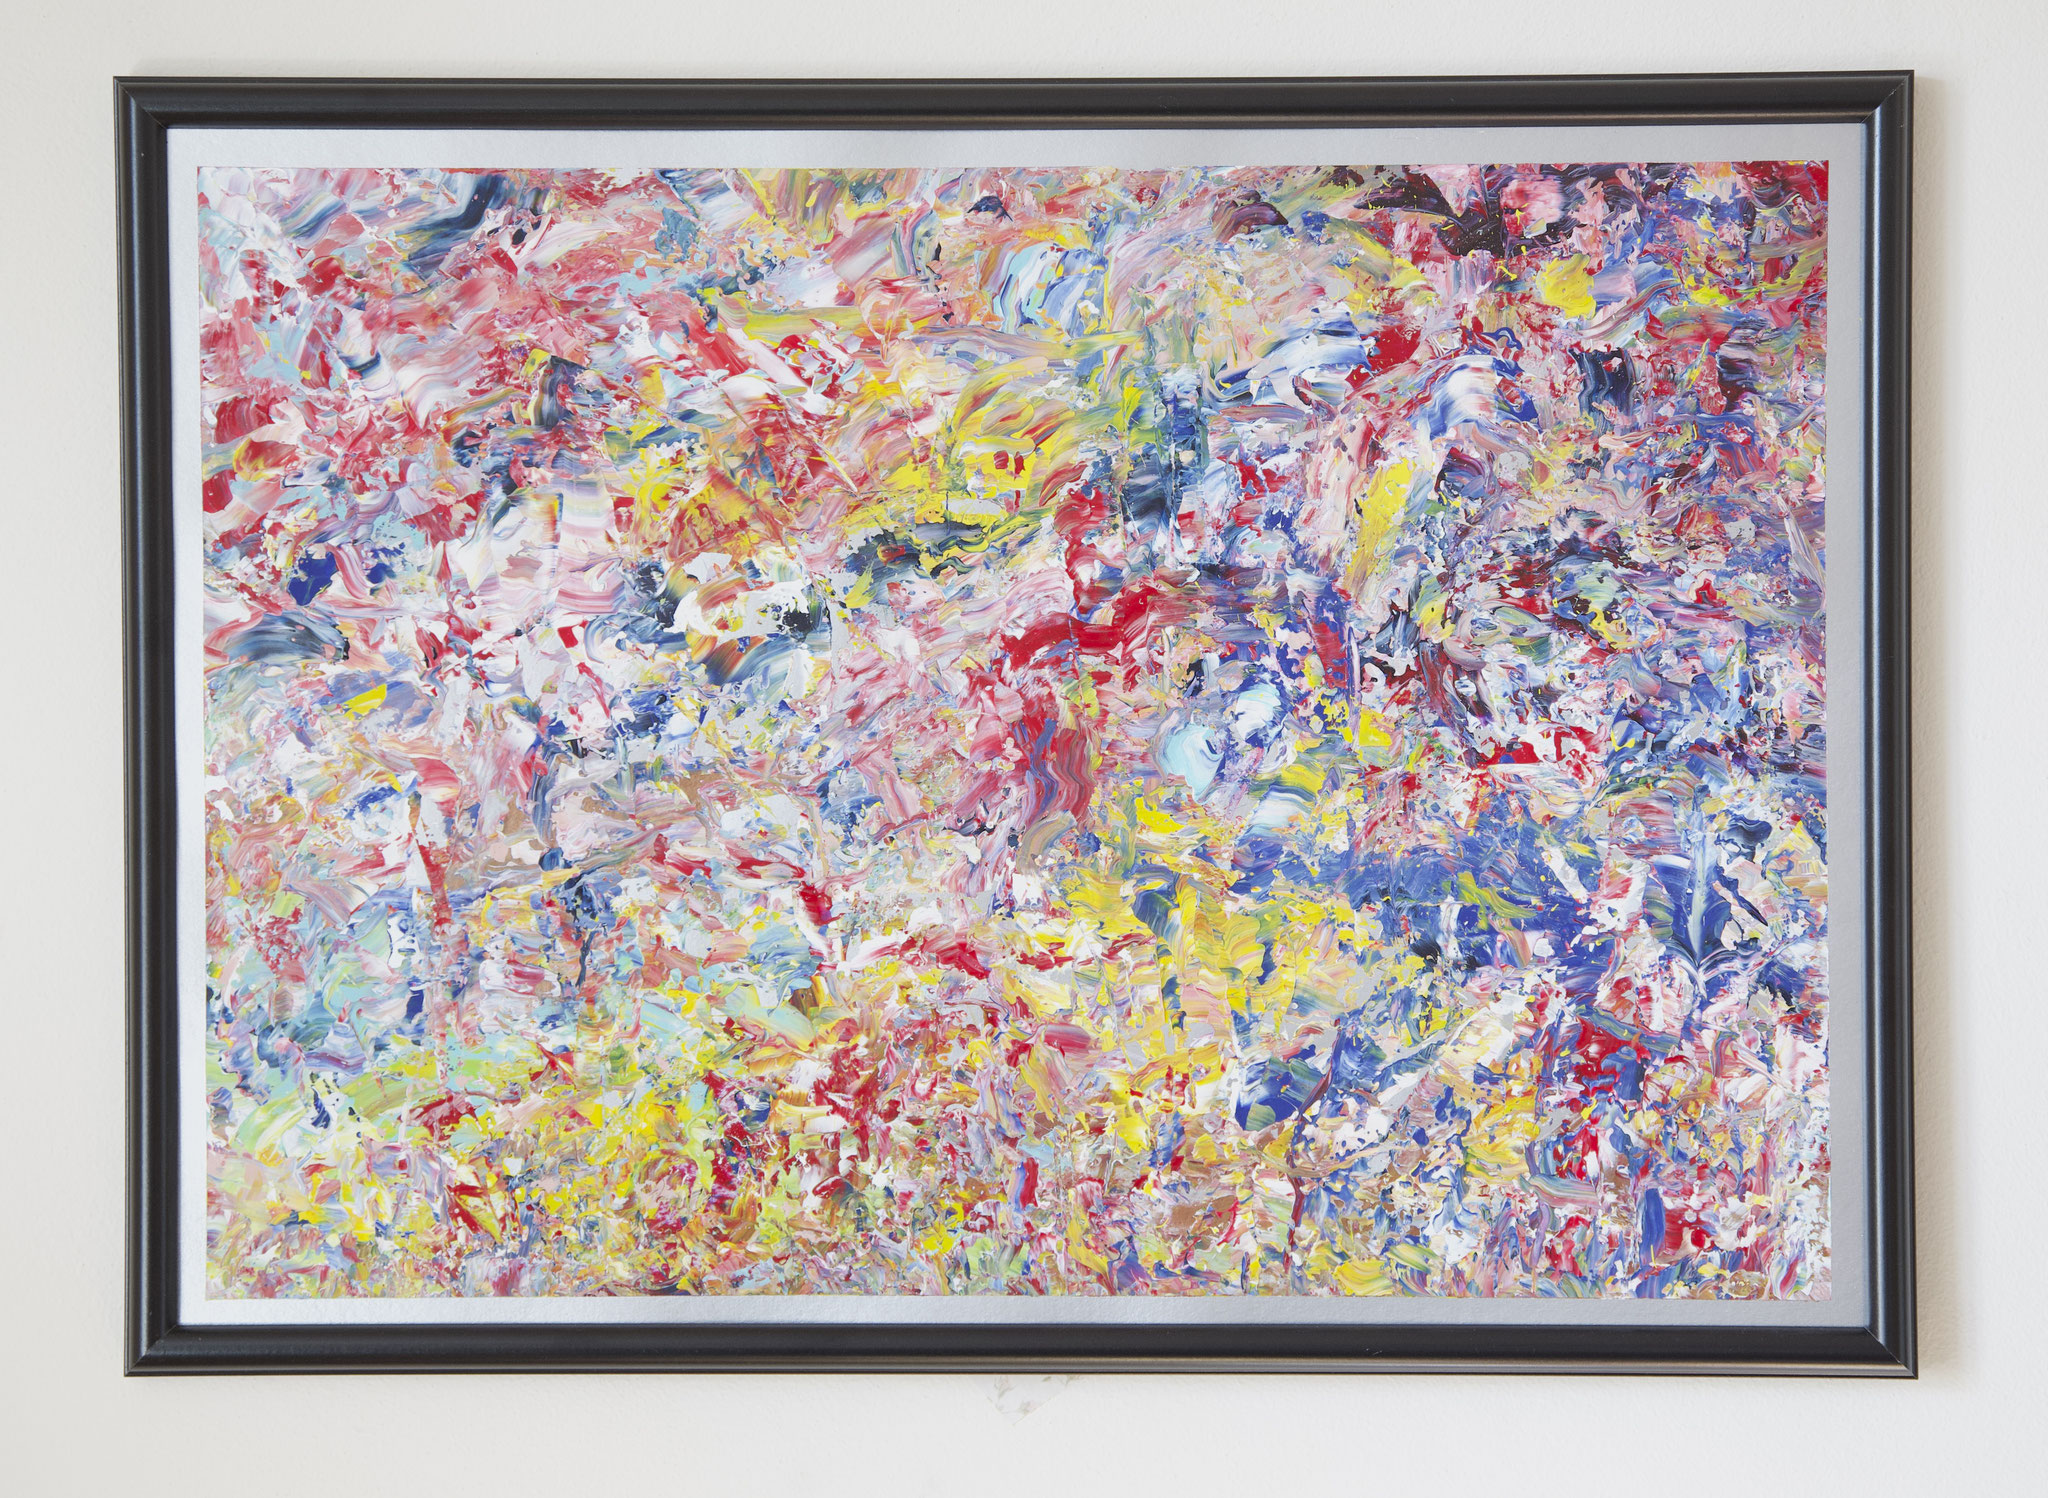 untitled 70x100cm (available)